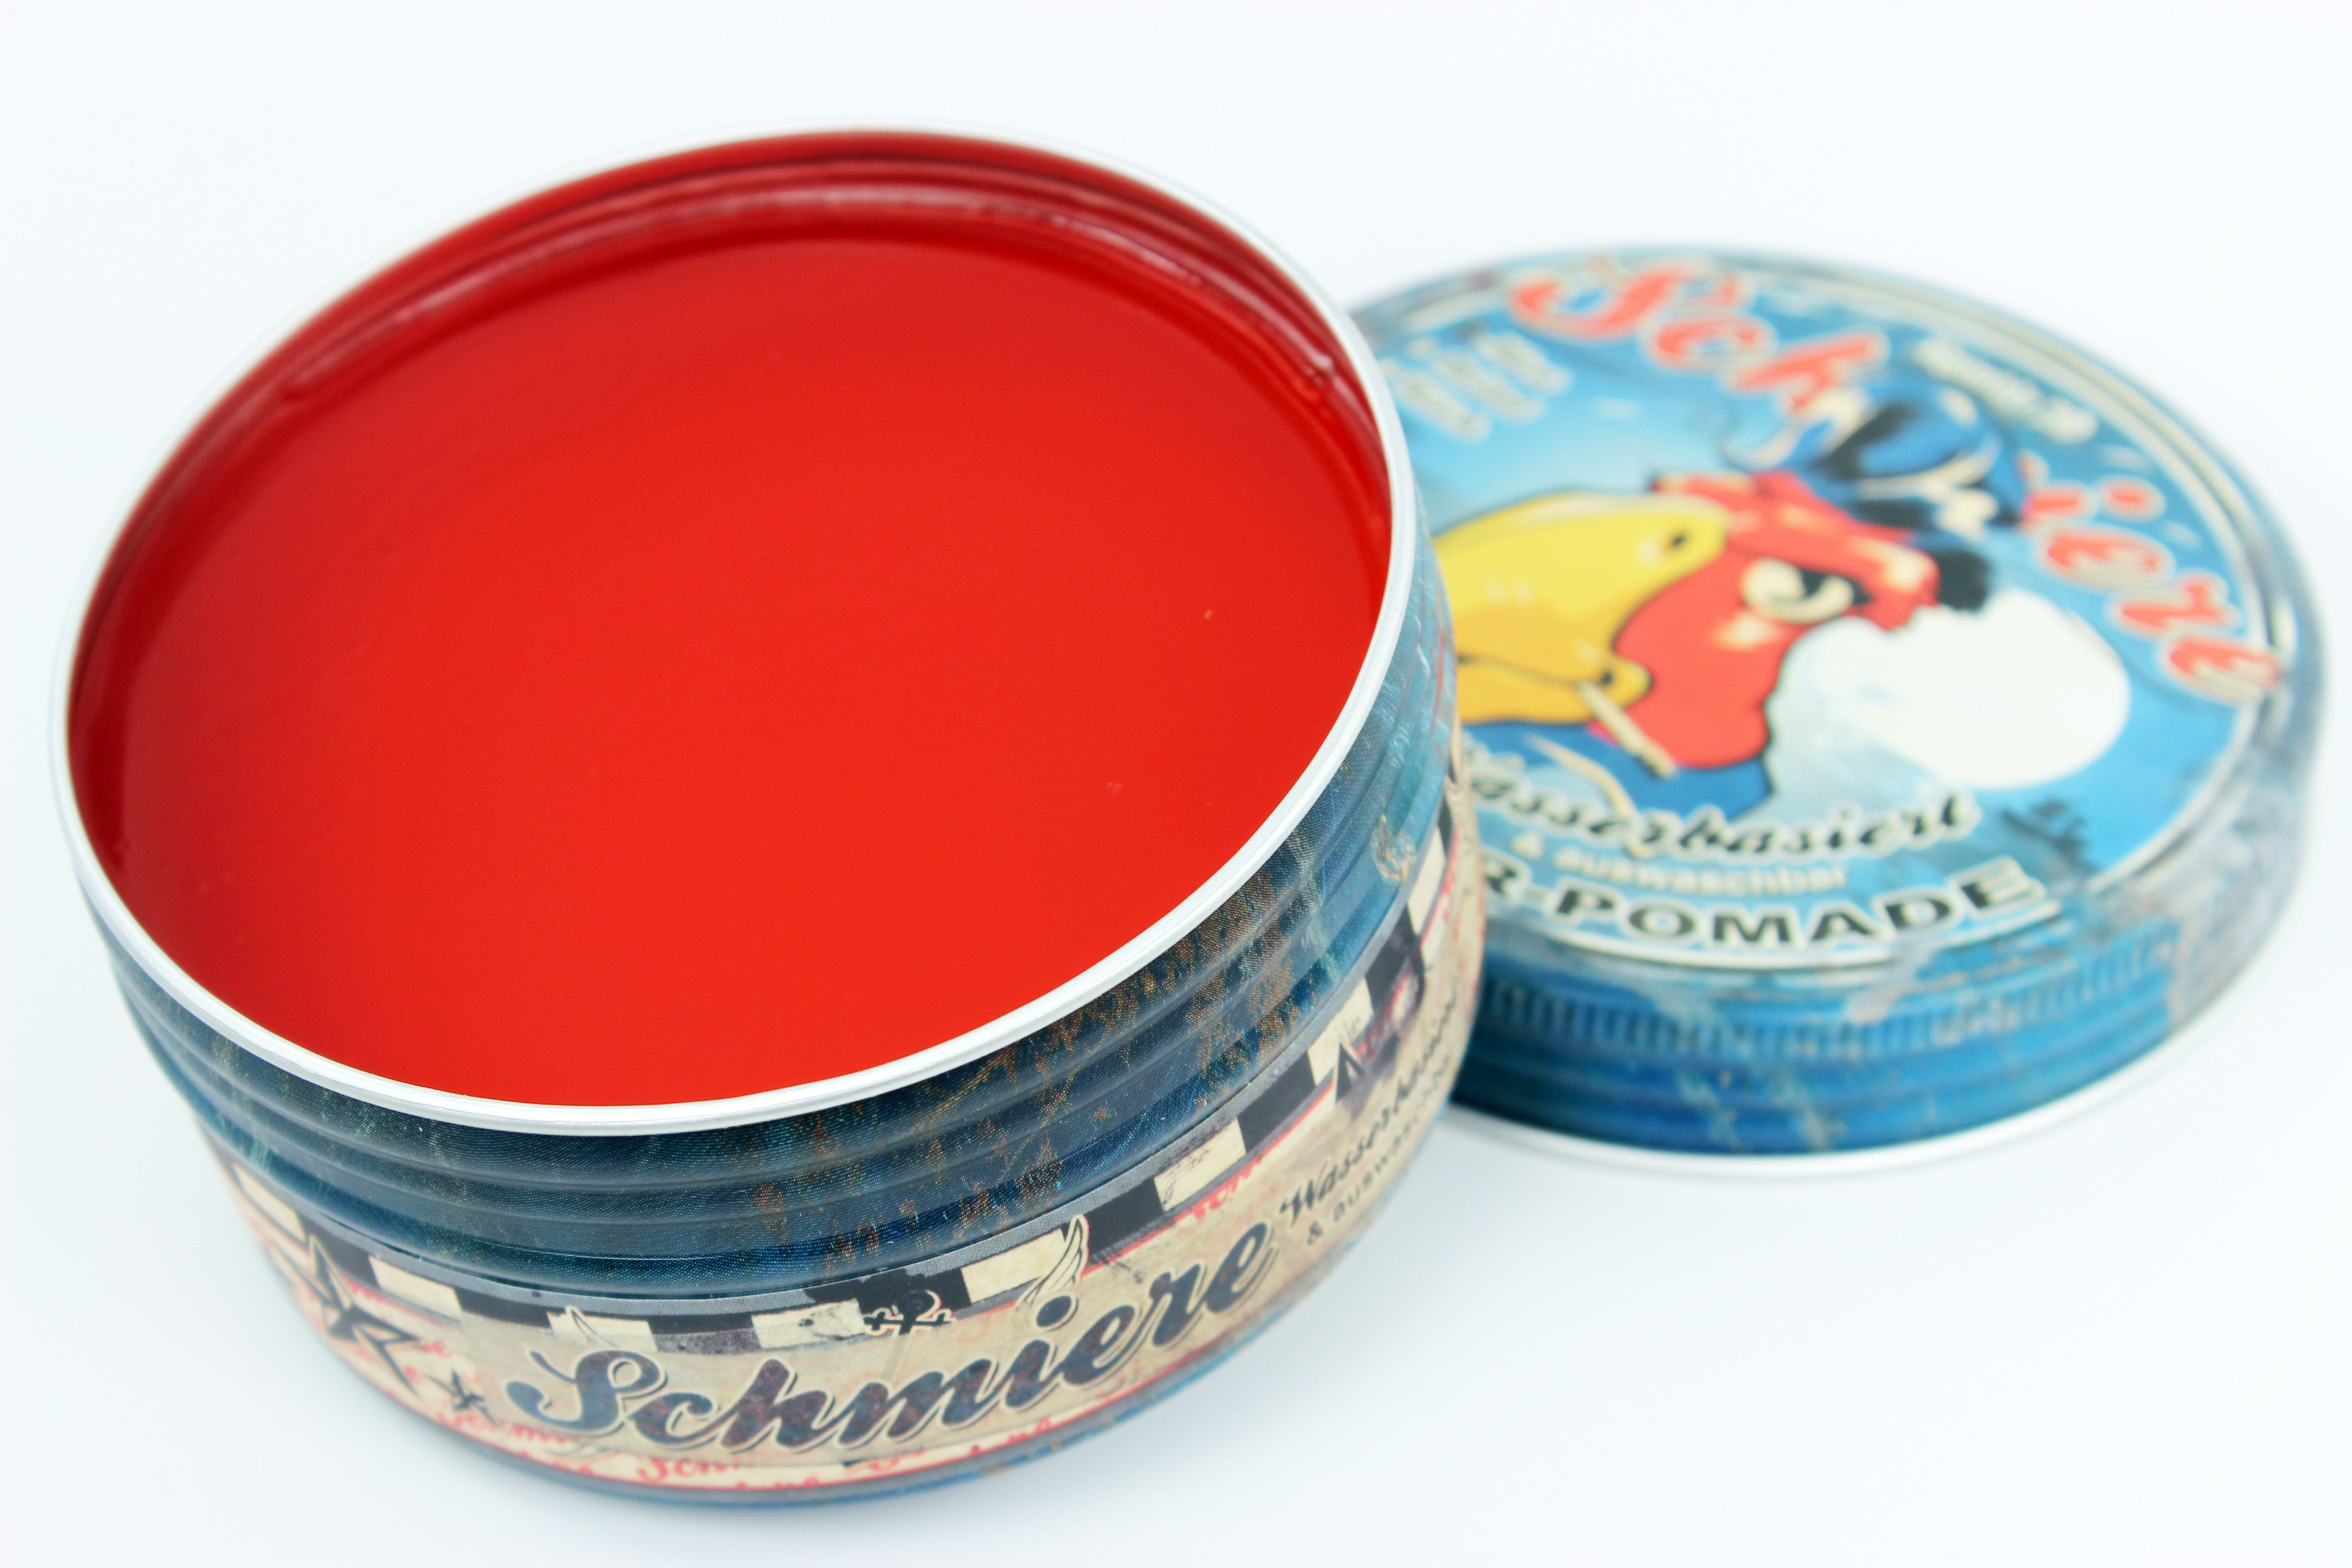 schmiere water soluble pomade